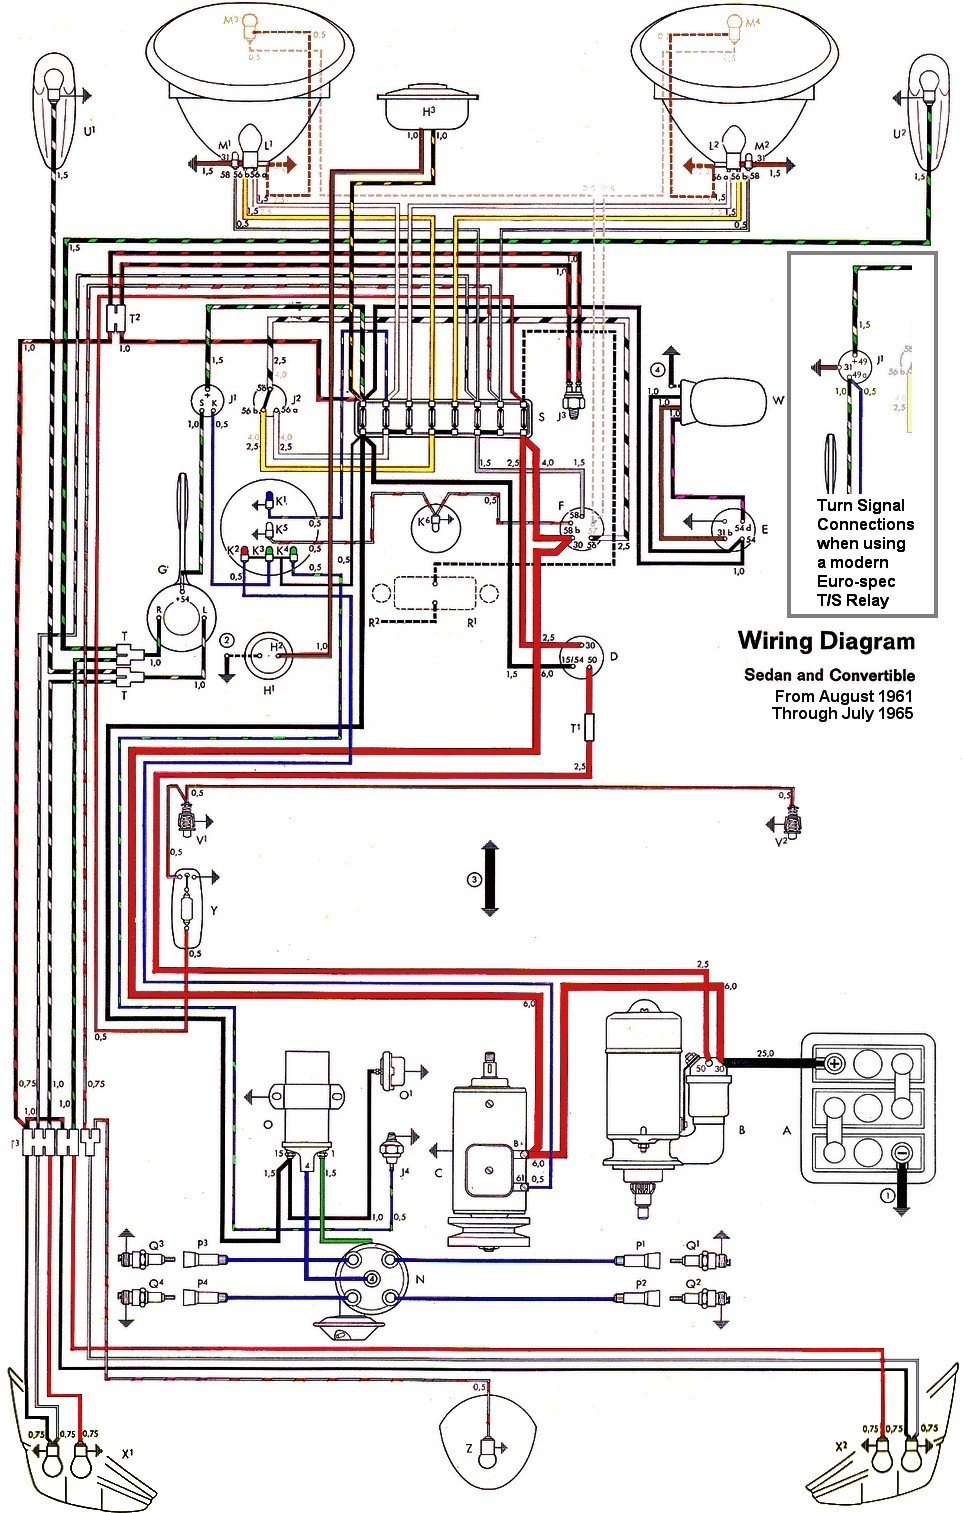 Baja Bug Wiring Diagram Layout Diagrams 50 Thesamba Com Type 1 Rh Atv Tao 110cc